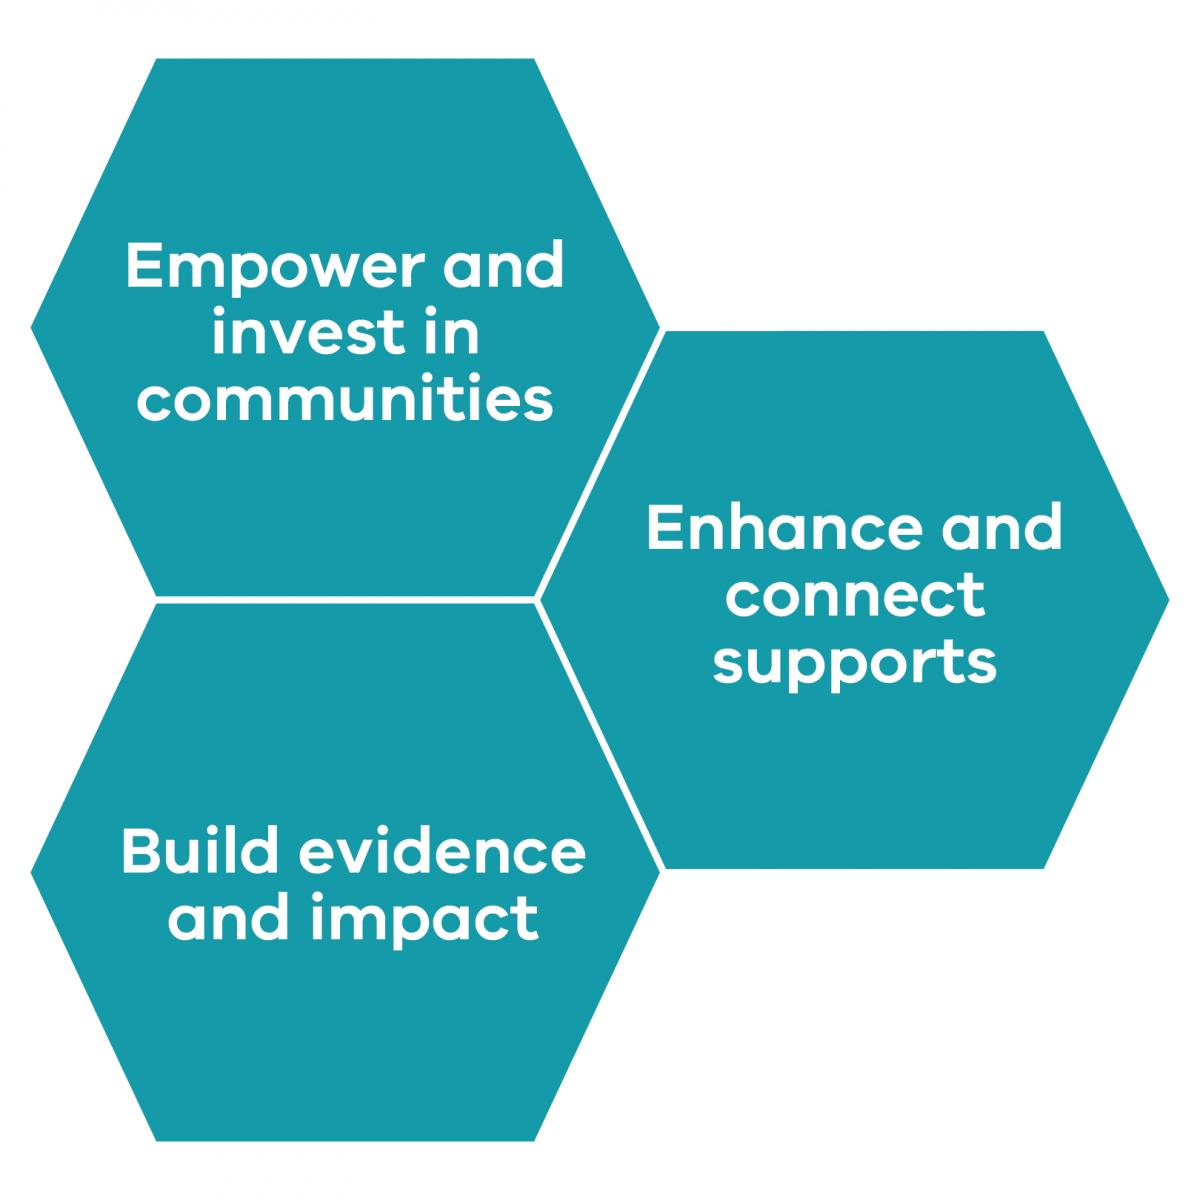 Three teal hexagon shapes with white text reinforcing the bolded text in the paragraph accompanying the graphic